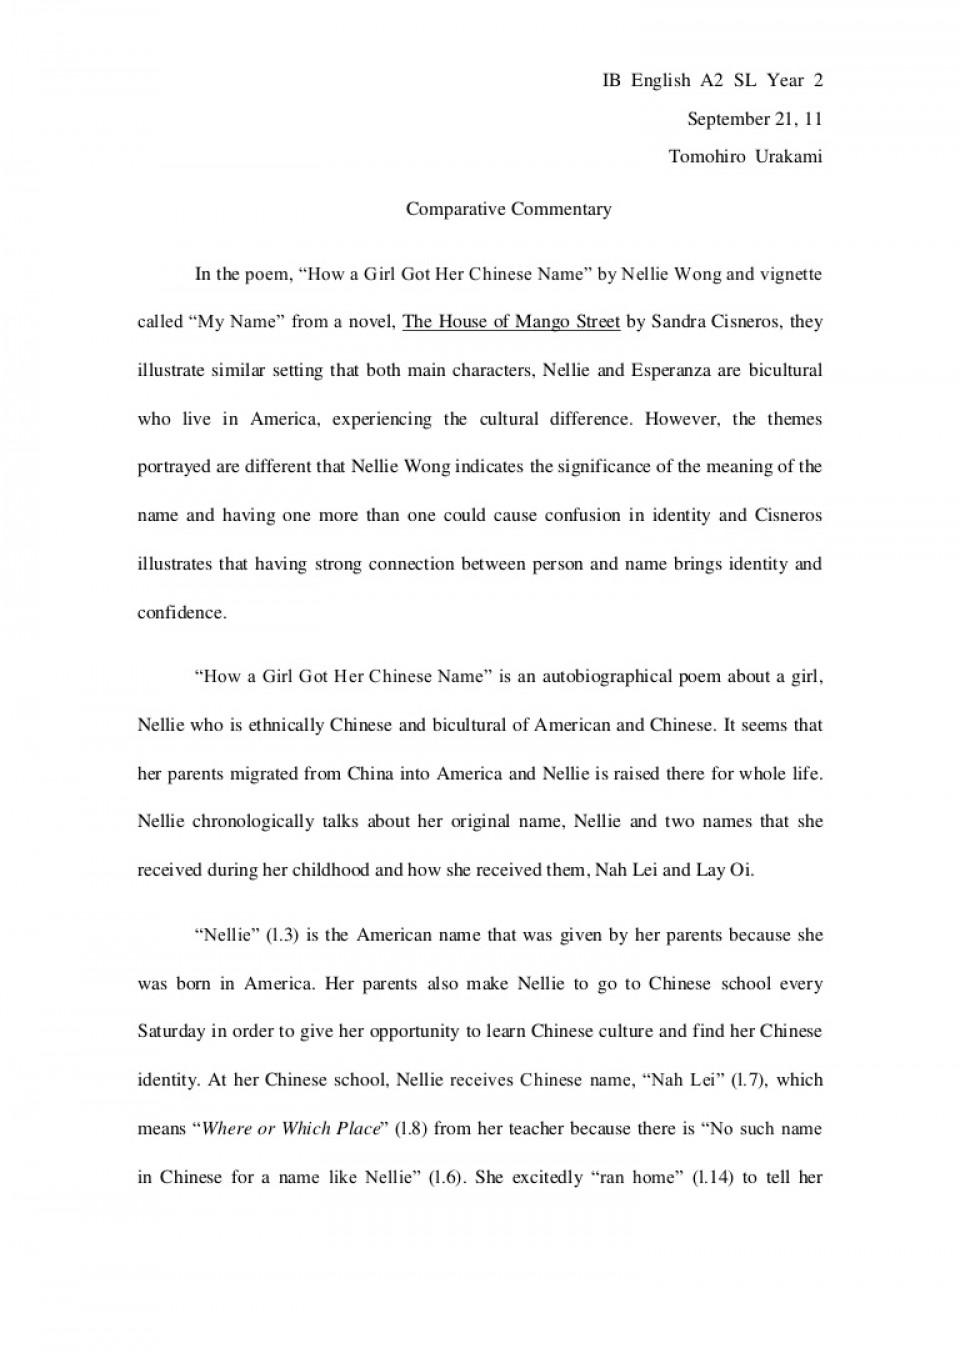 011 Essay Example Rare About Yourself For College Questions English 960